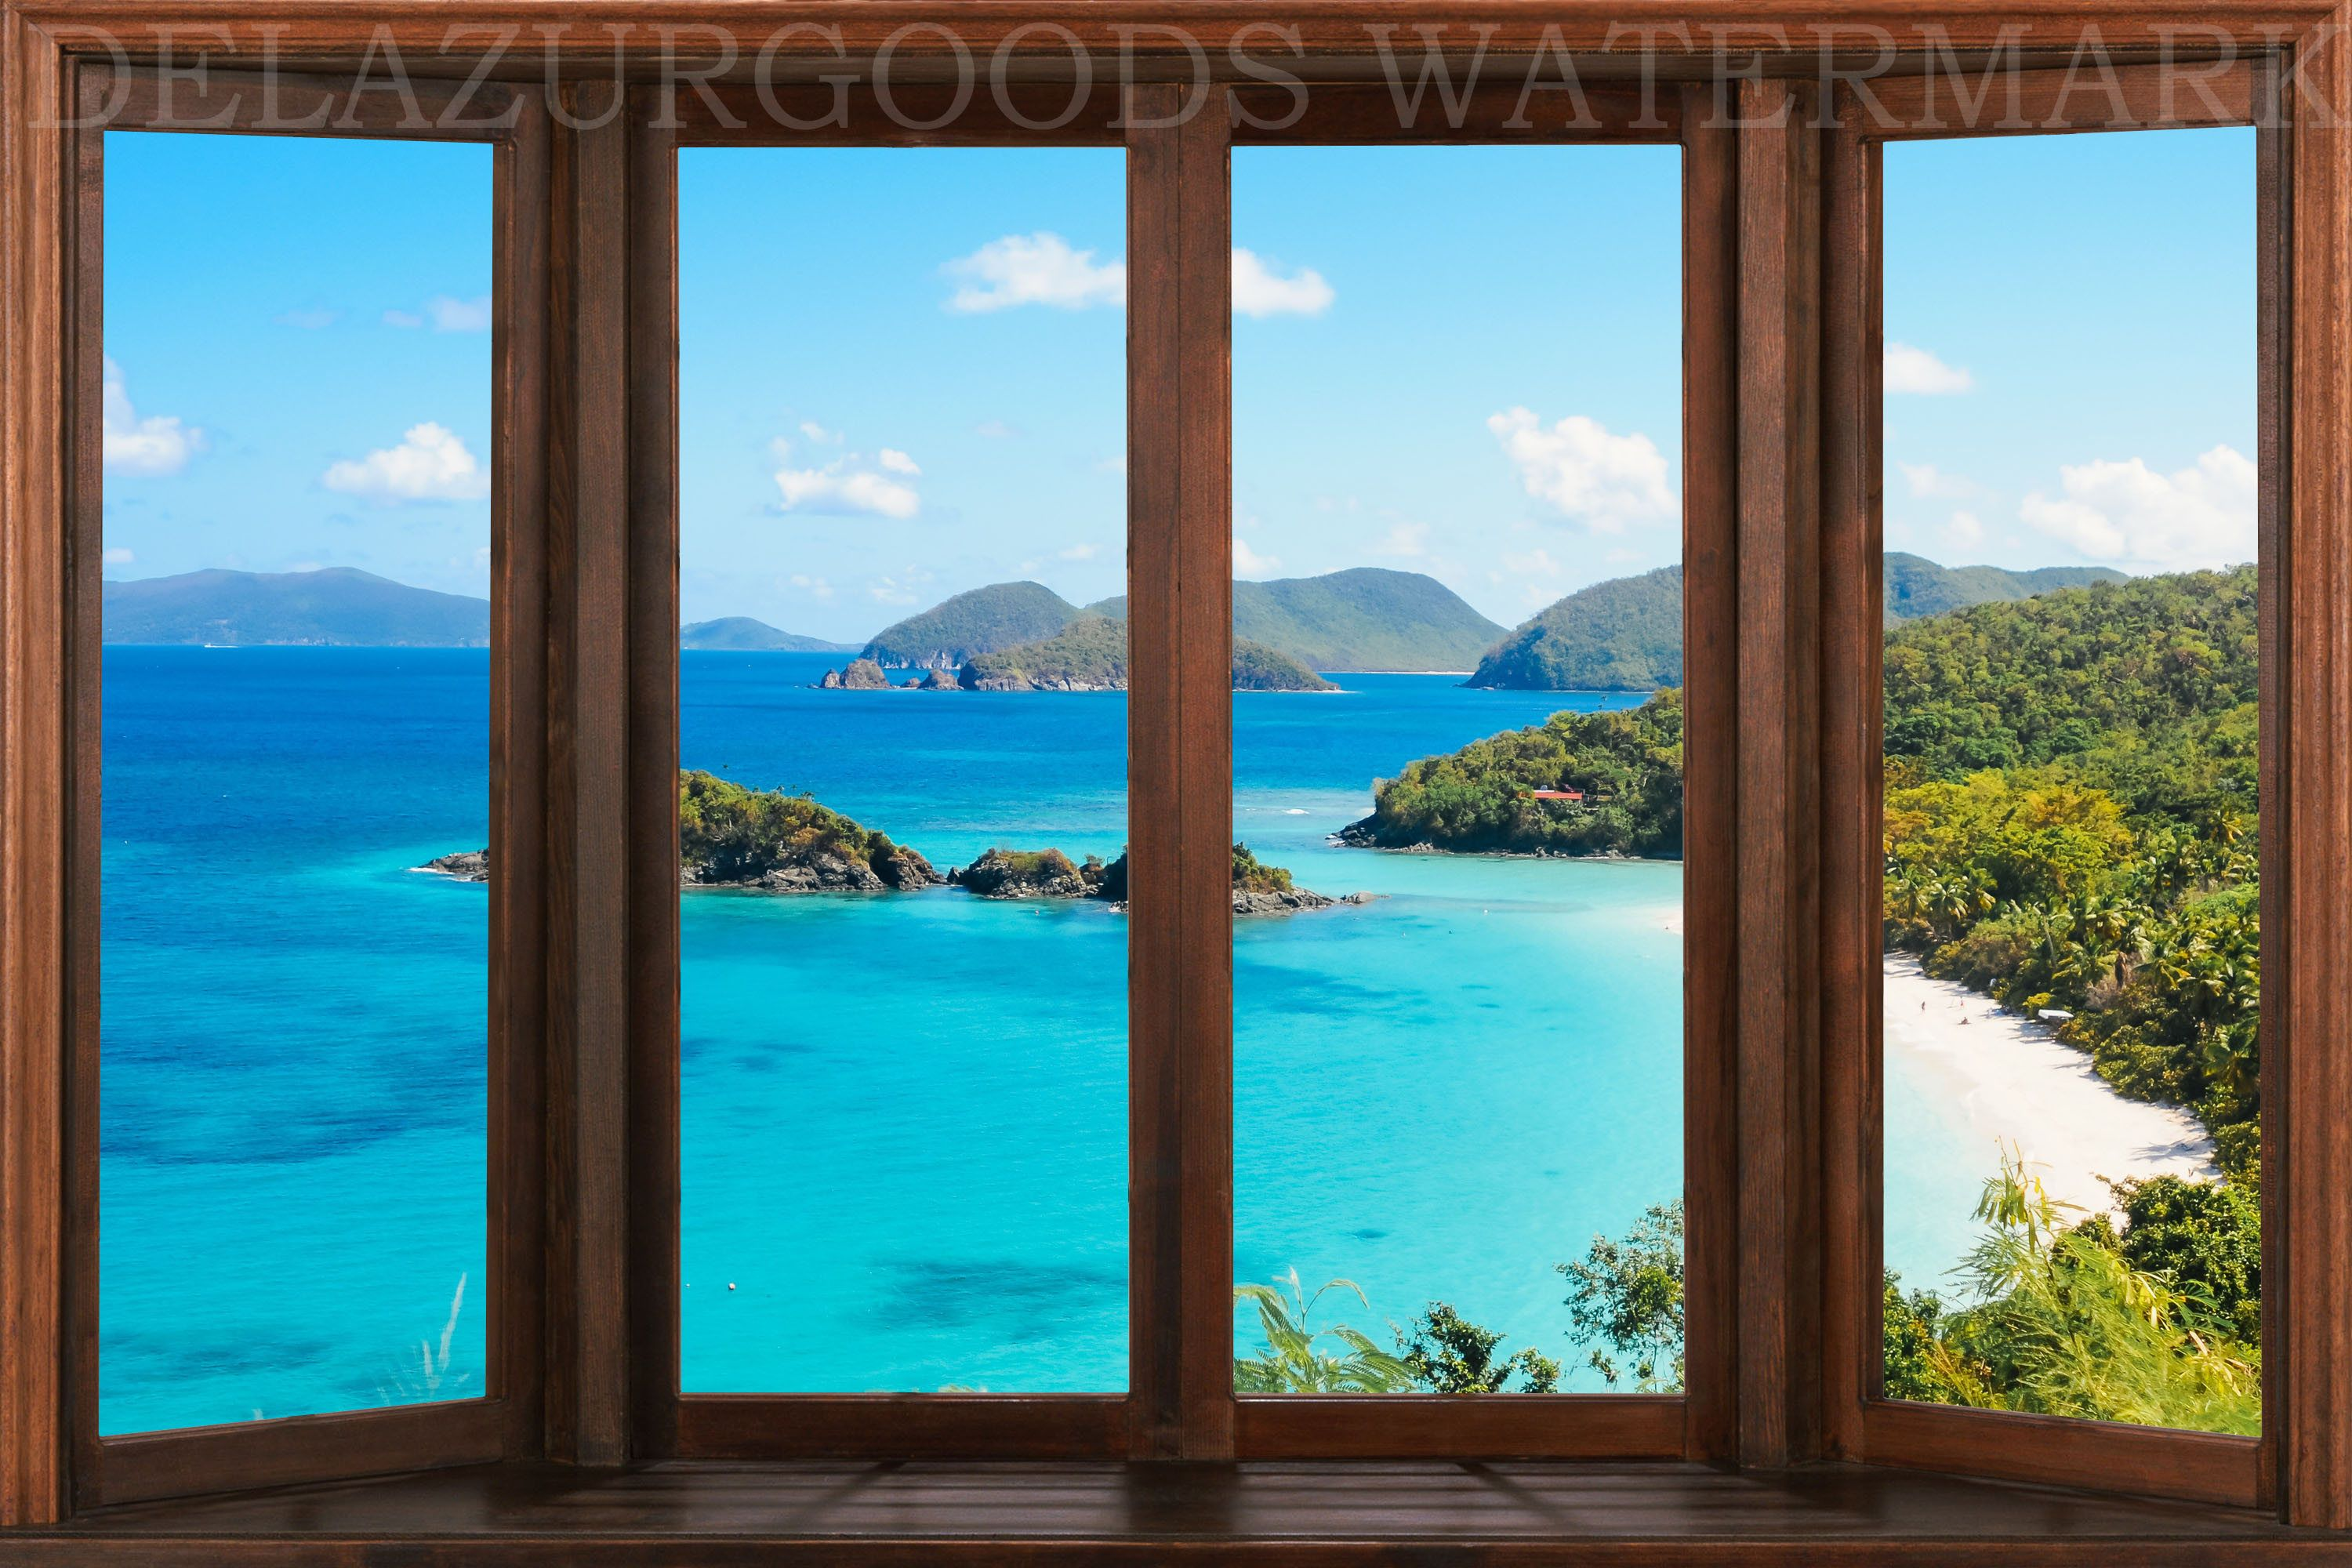 Bay Window View Wallpaper Peel And Stick Removable Etsy Window View View Wallpaper Bay Window